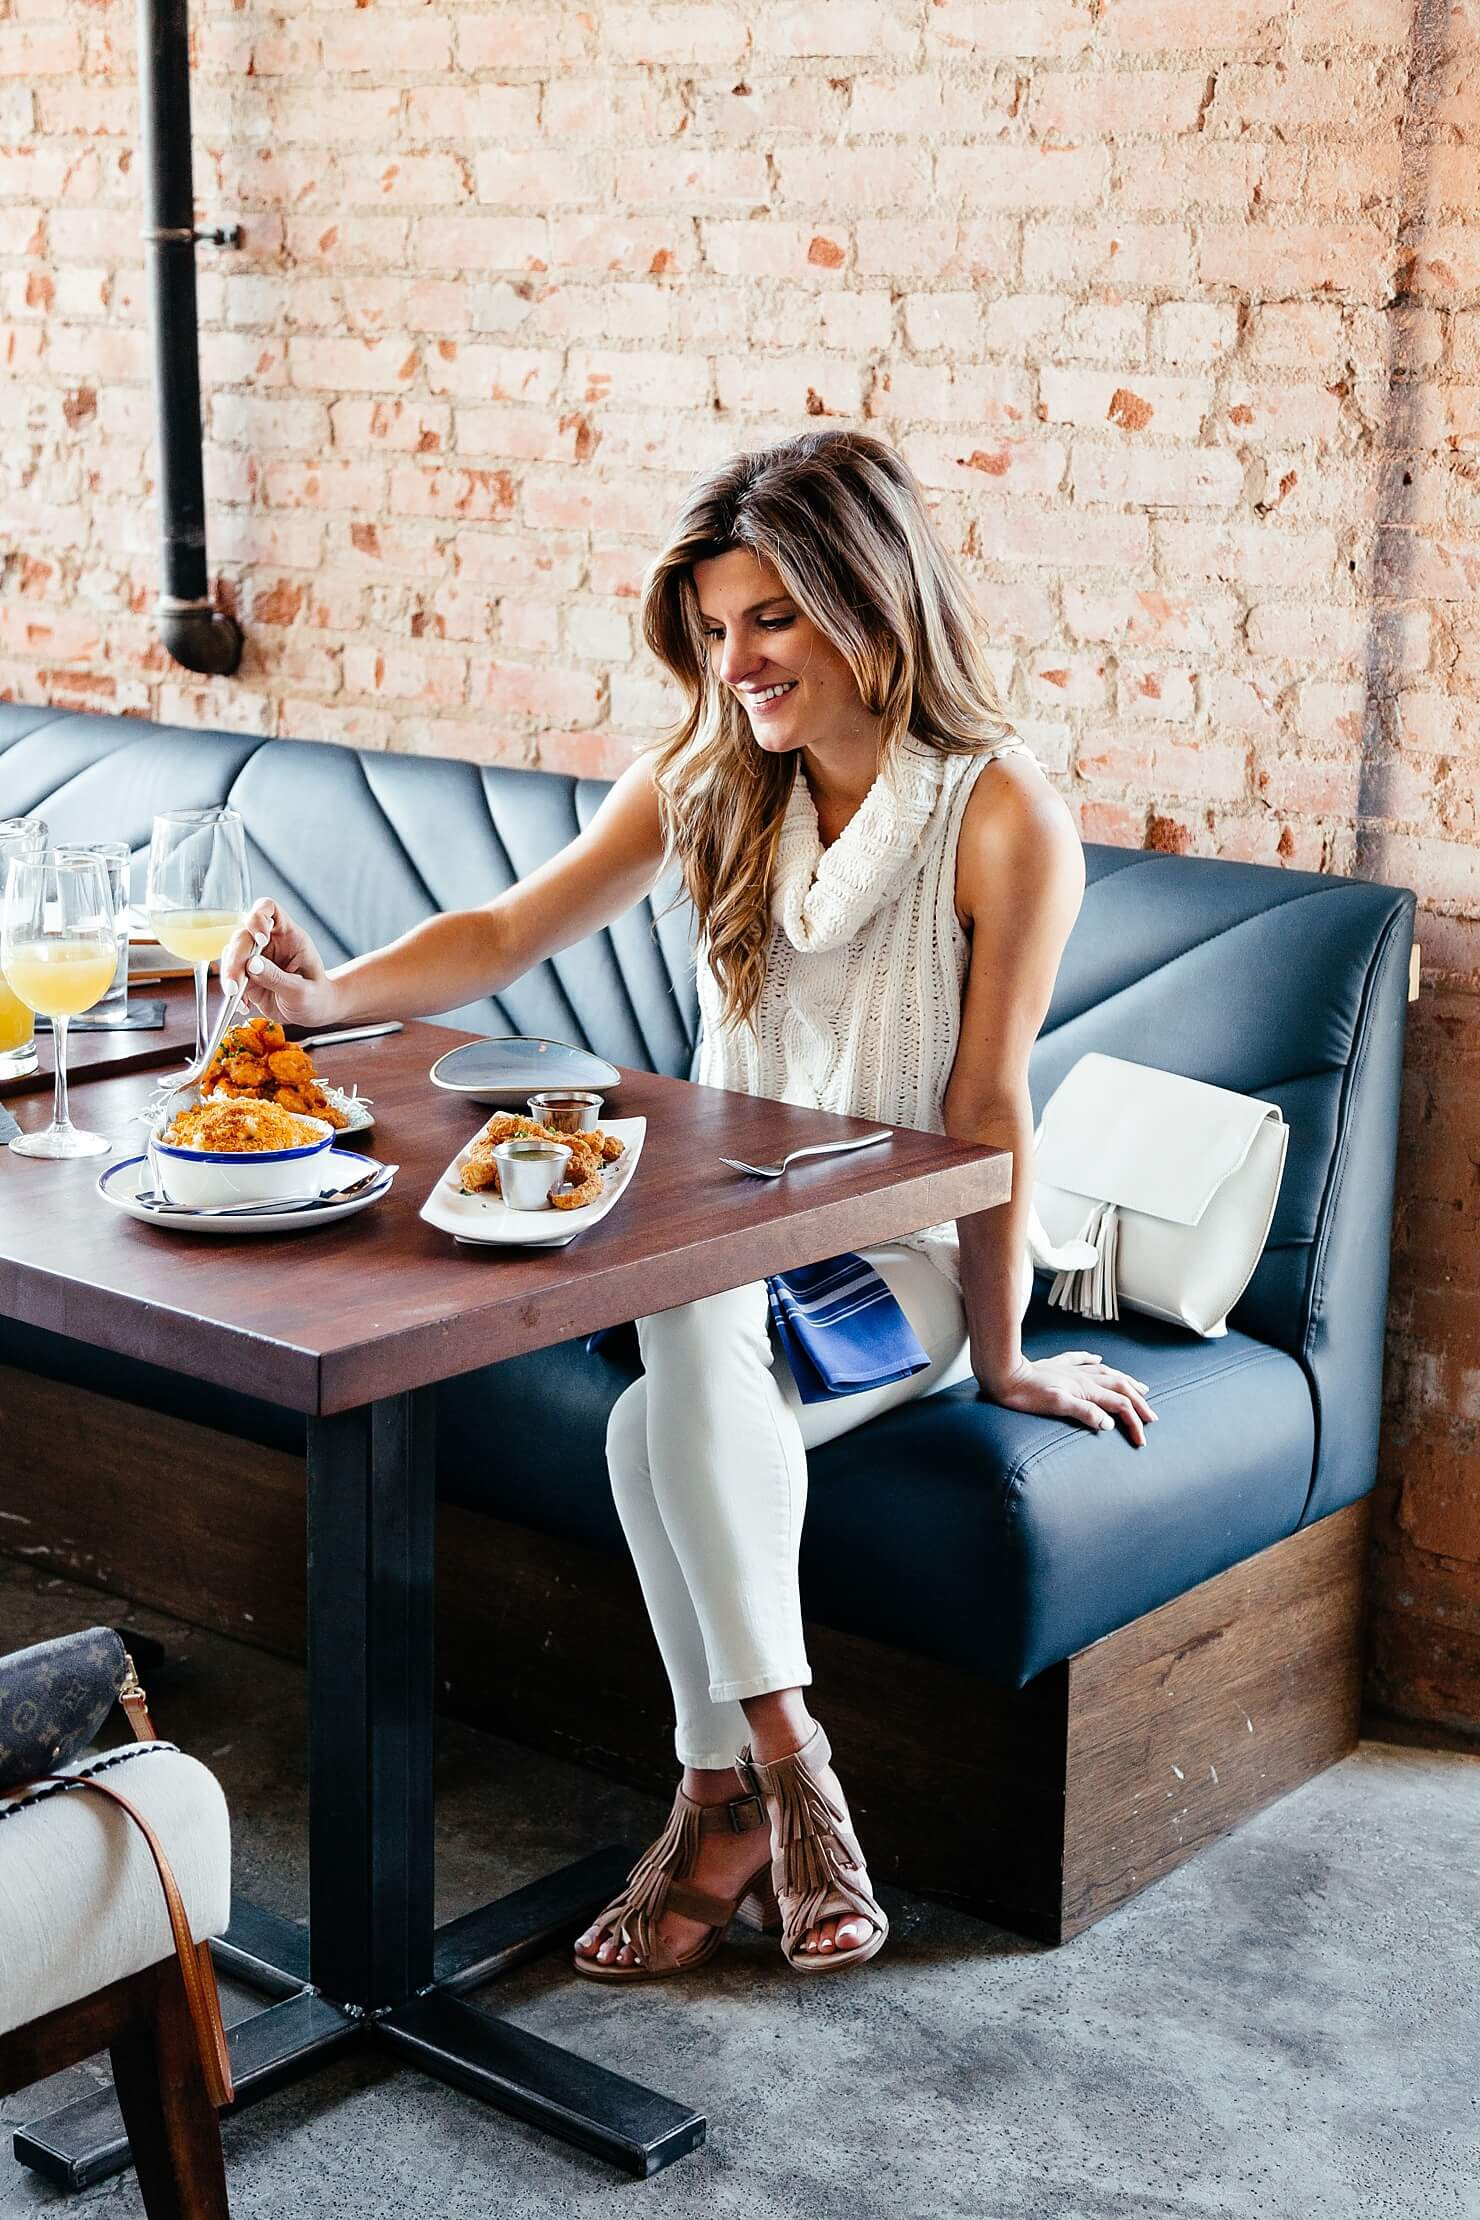 brighton keller at Stirr Dallas having lunch wearing sole society